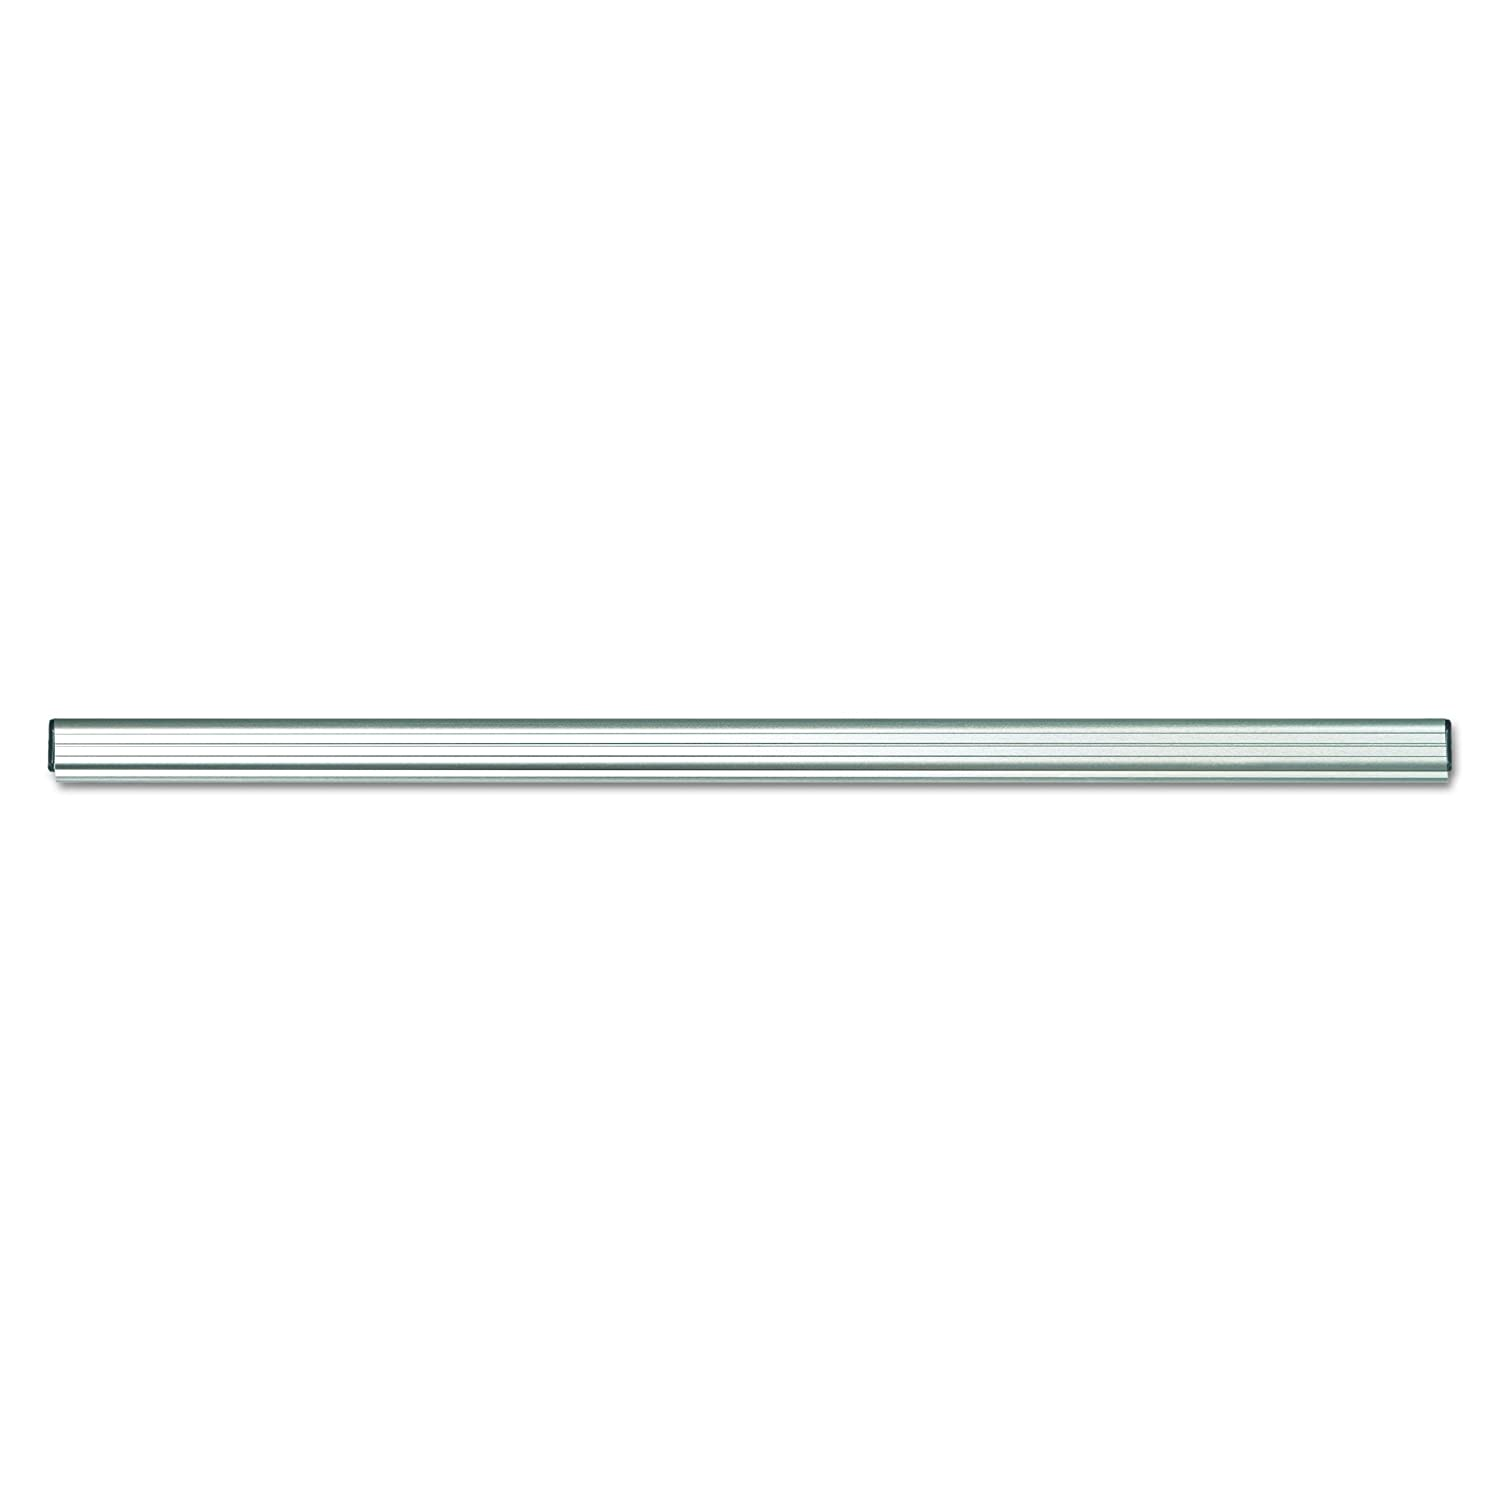 ADVANTUS Grip-A-Strip Display Rail, Full Size, 6 Feet Long, Satin Finish Aluminum (2012) Advantus Corp.- Office